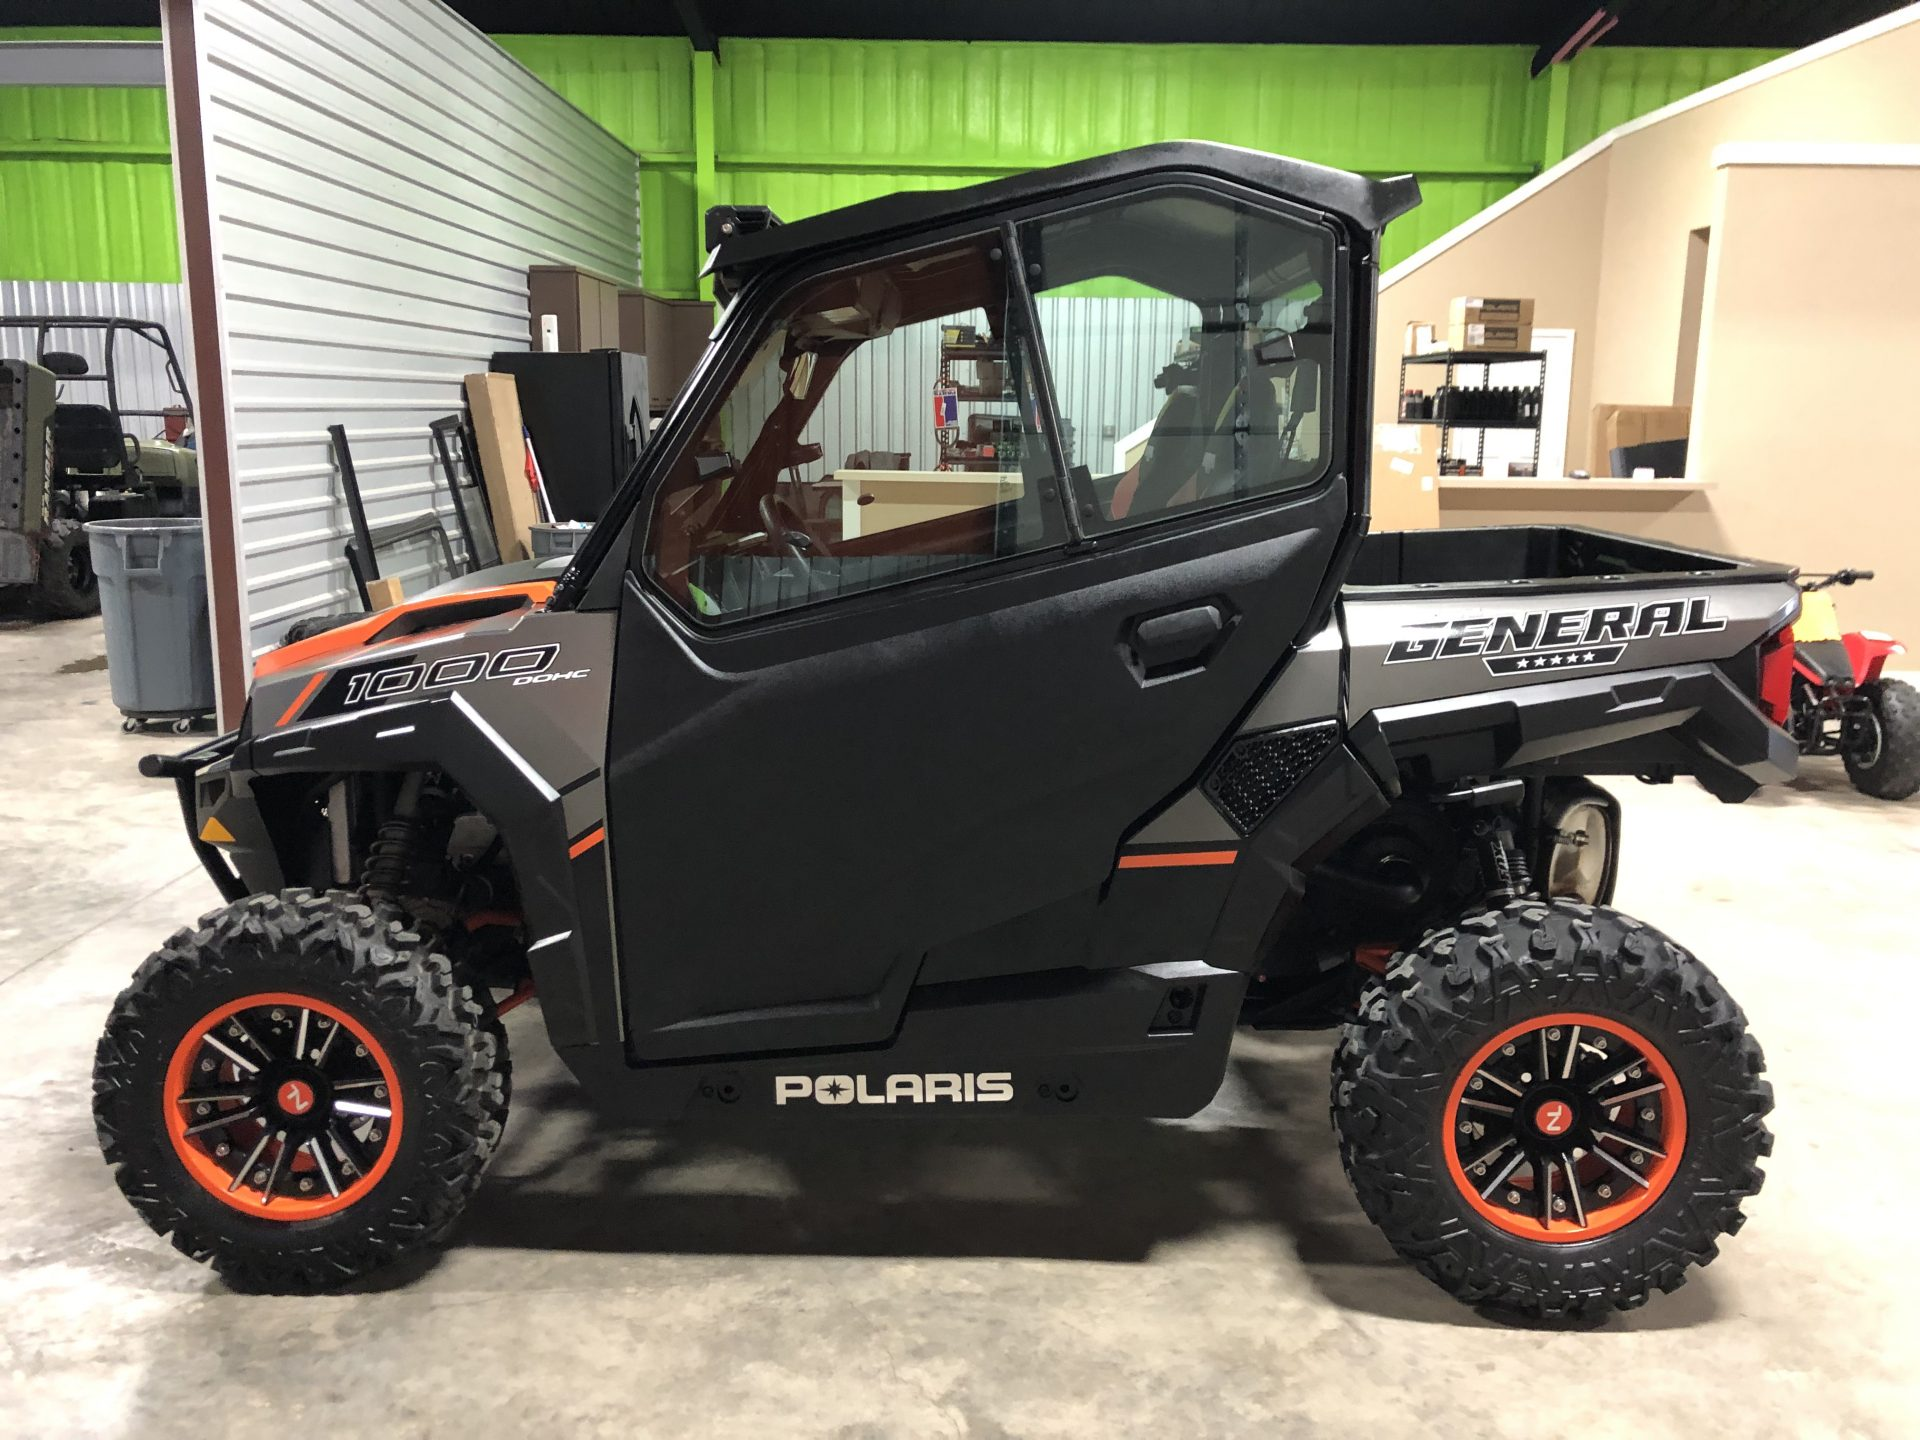 2017 Polaris General Deluxe 1000 Image